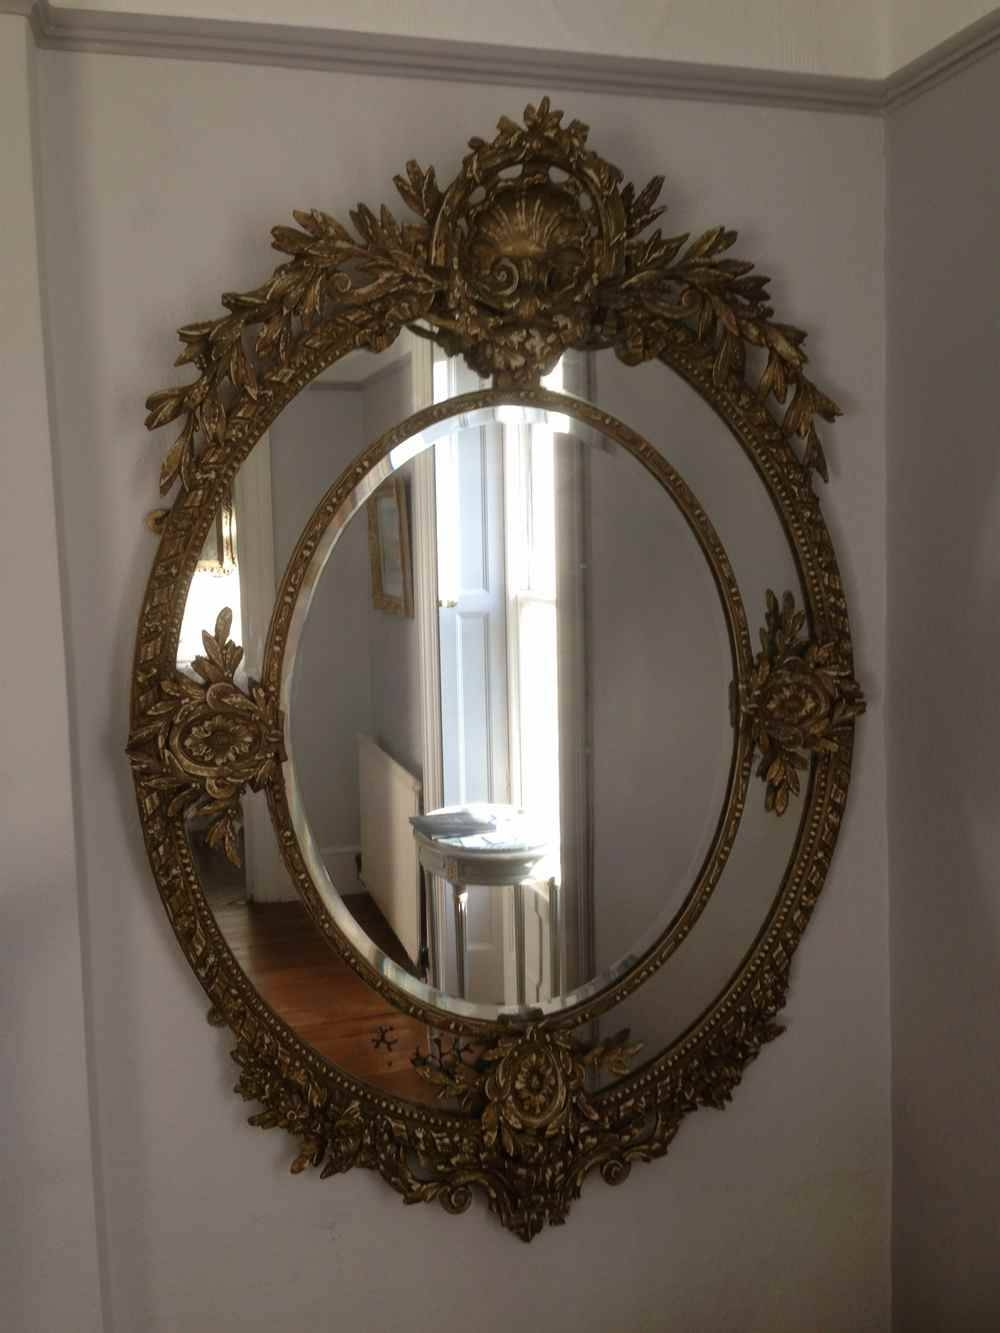 A Wonderful Large Antique 19th Century French Carved Wood Oval Intended For Large Ornate Wall Mirrors (View 13 of 15)